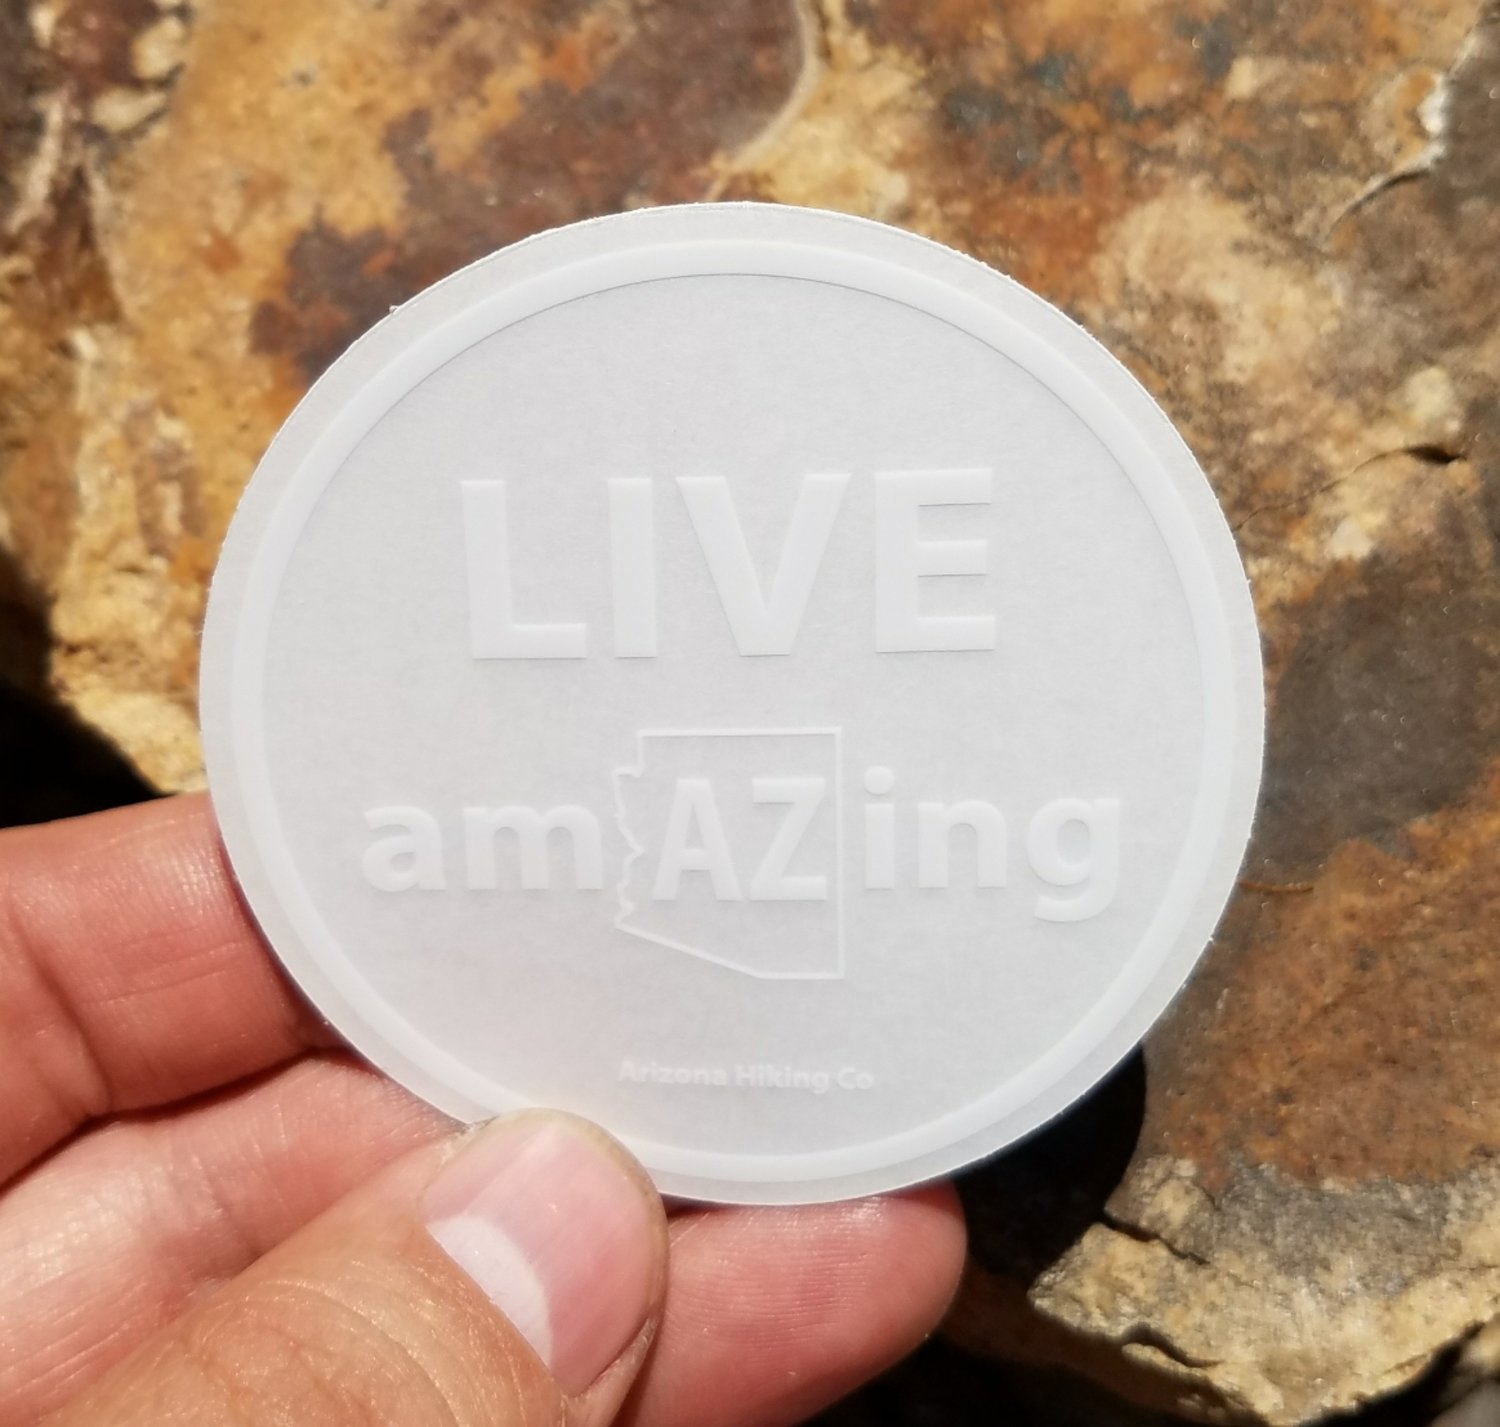 Live amAzing Sticker (Clear)